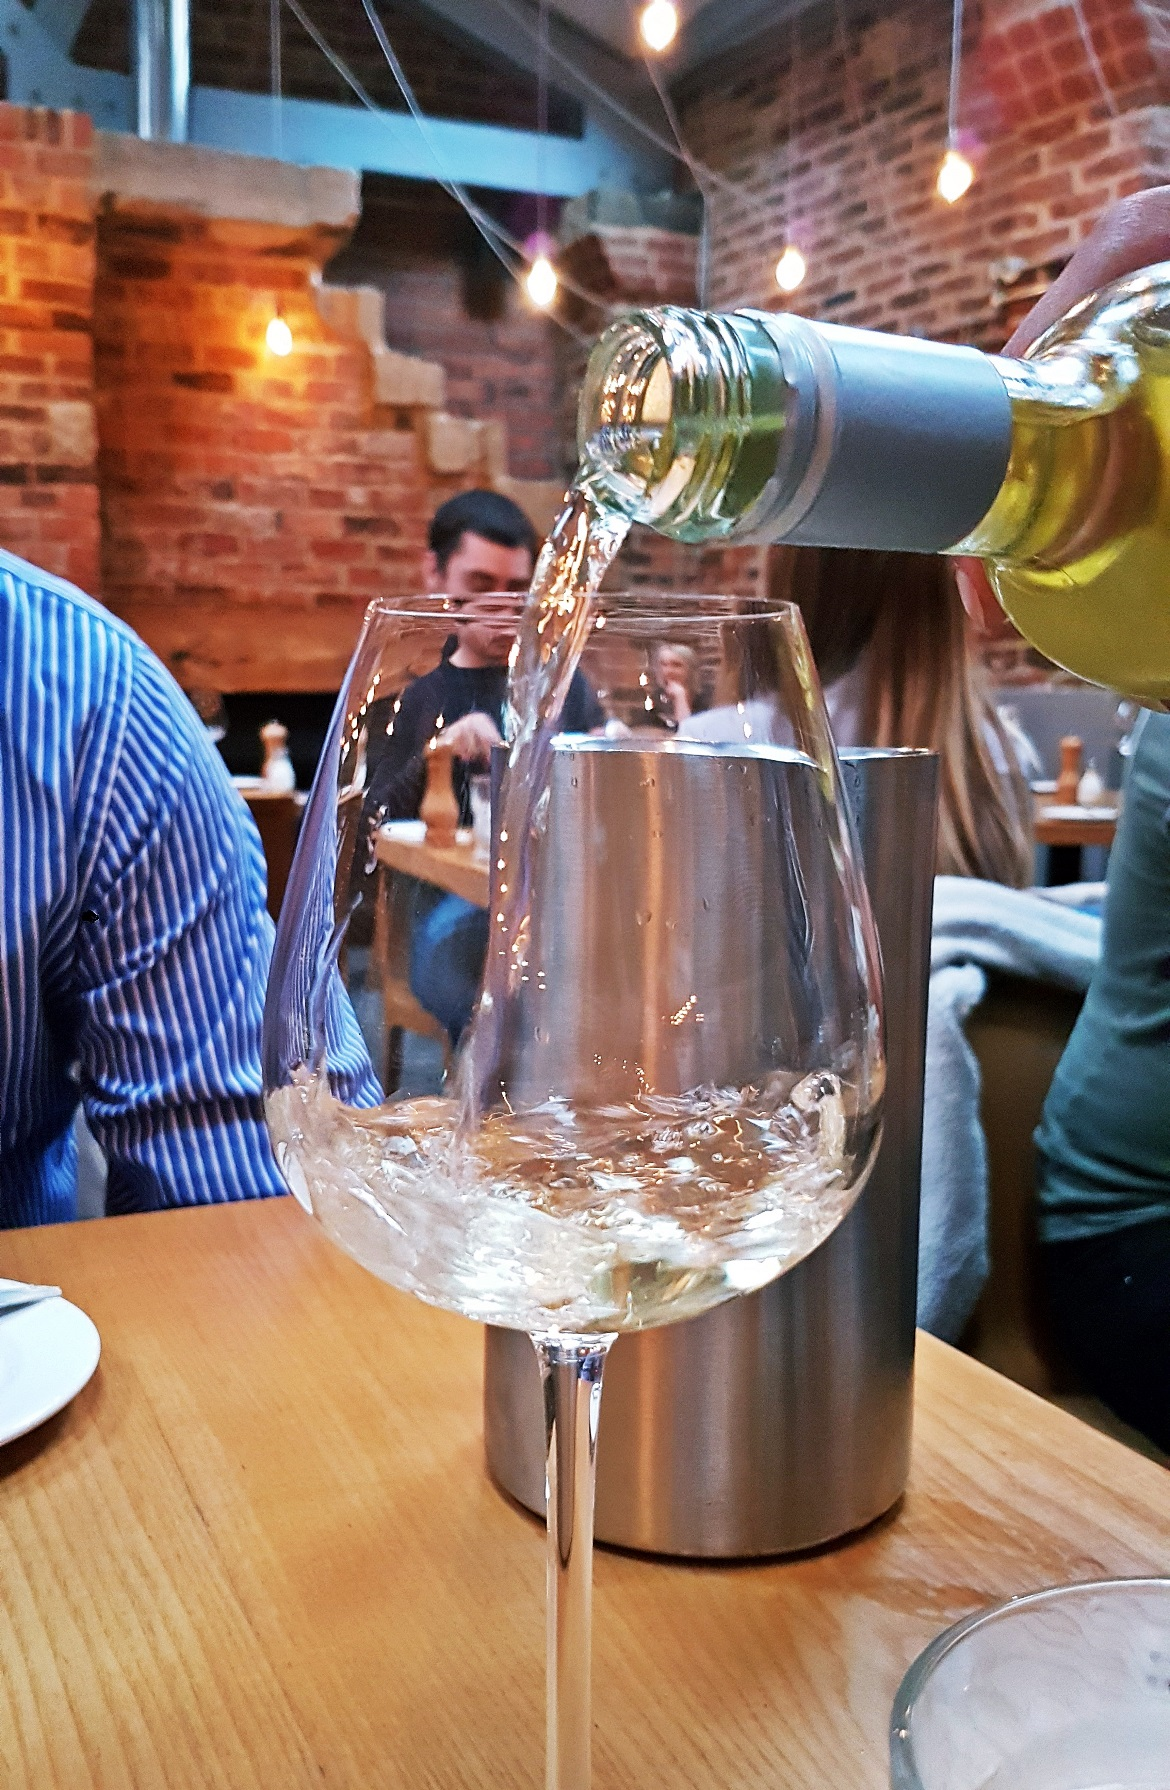 Verdejo wine - Restaurant Review of Shears Yard, Leeds Restaurant Week menu by BeckyBecky Blogs